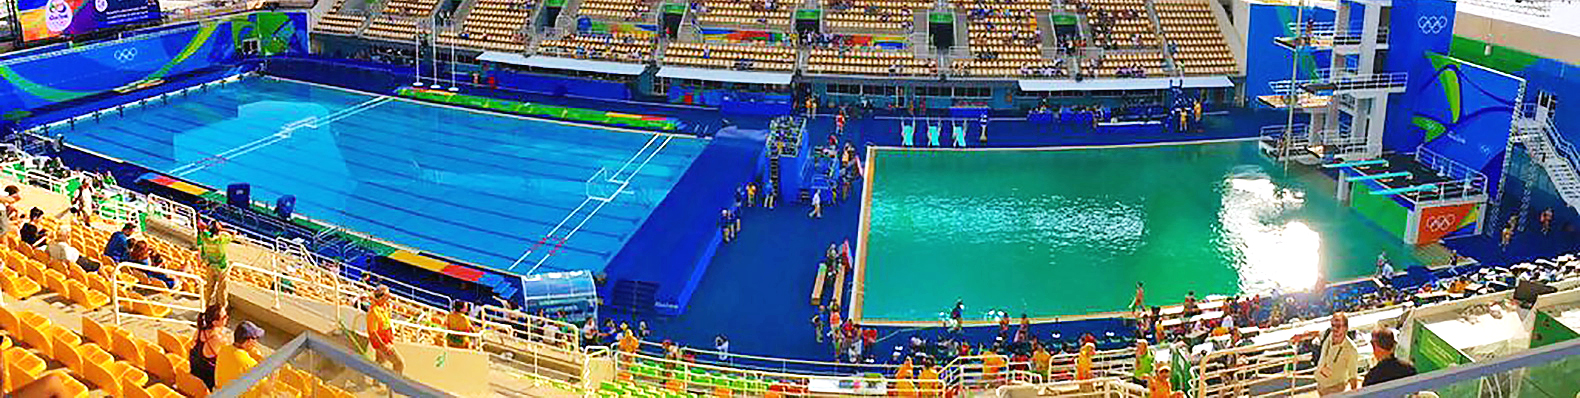 why did this olympic diving pool suddenly turn bright green rio 2016 olympic pool green tom daley inhabitat green design innovation architecture